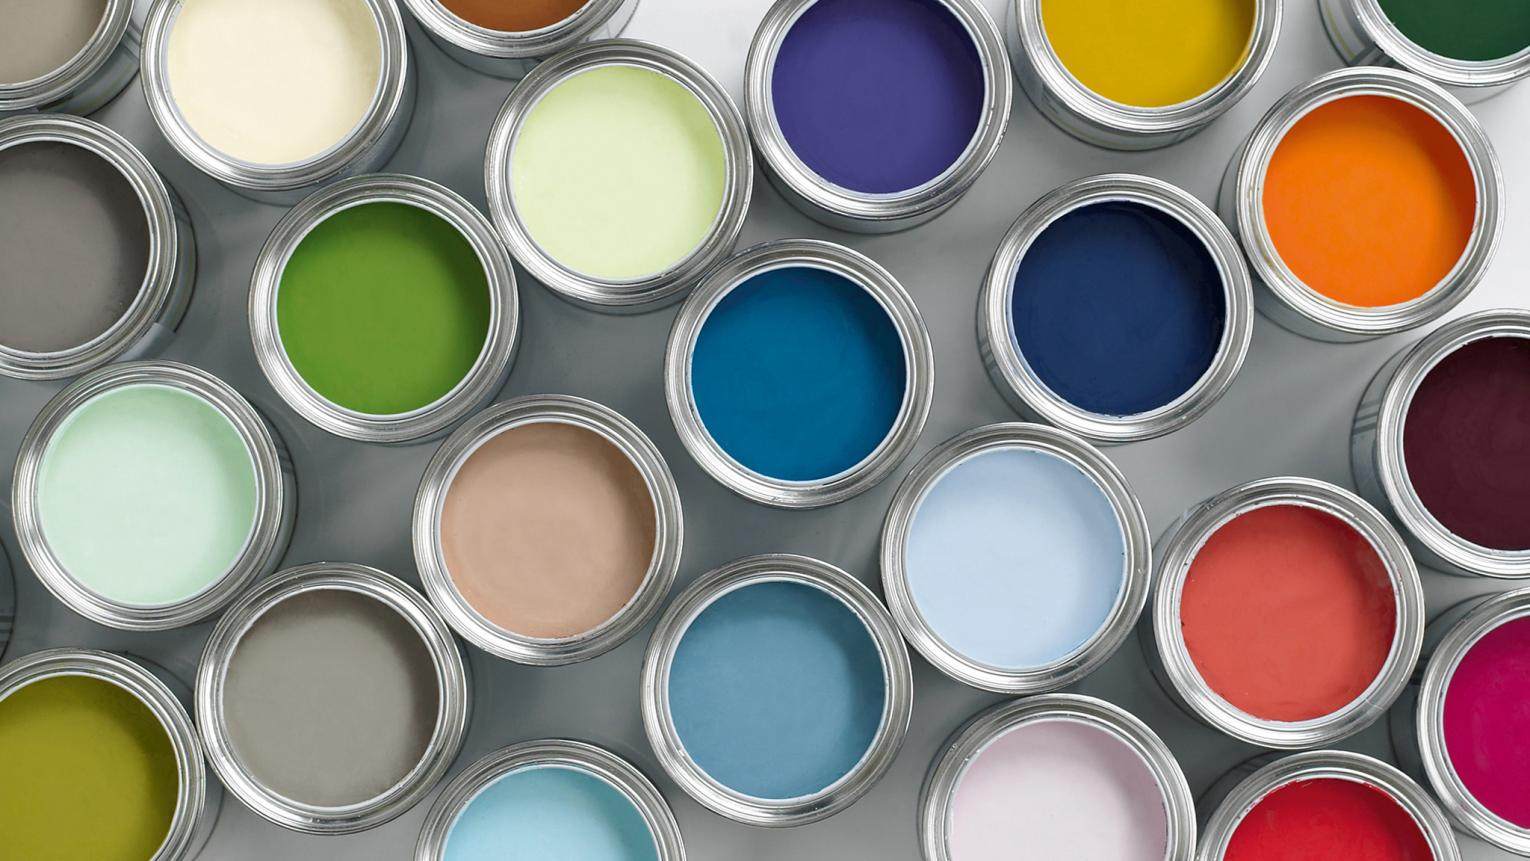 Want to keep your paint fresher for longer? Store paint the smart way with our expert tips and tricks.